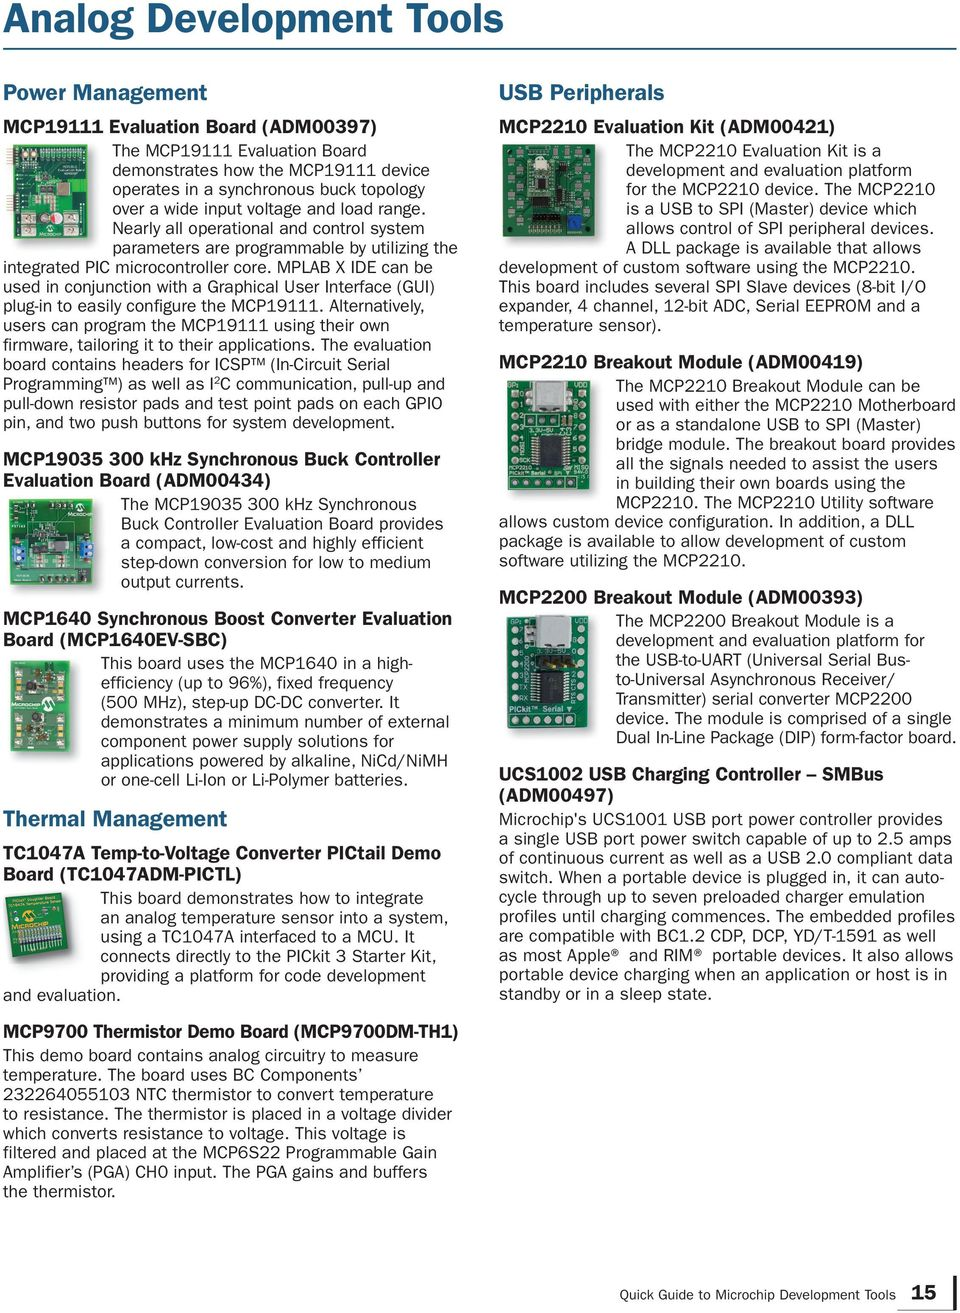 Quick Guide to Microchip Development Tools - PDF